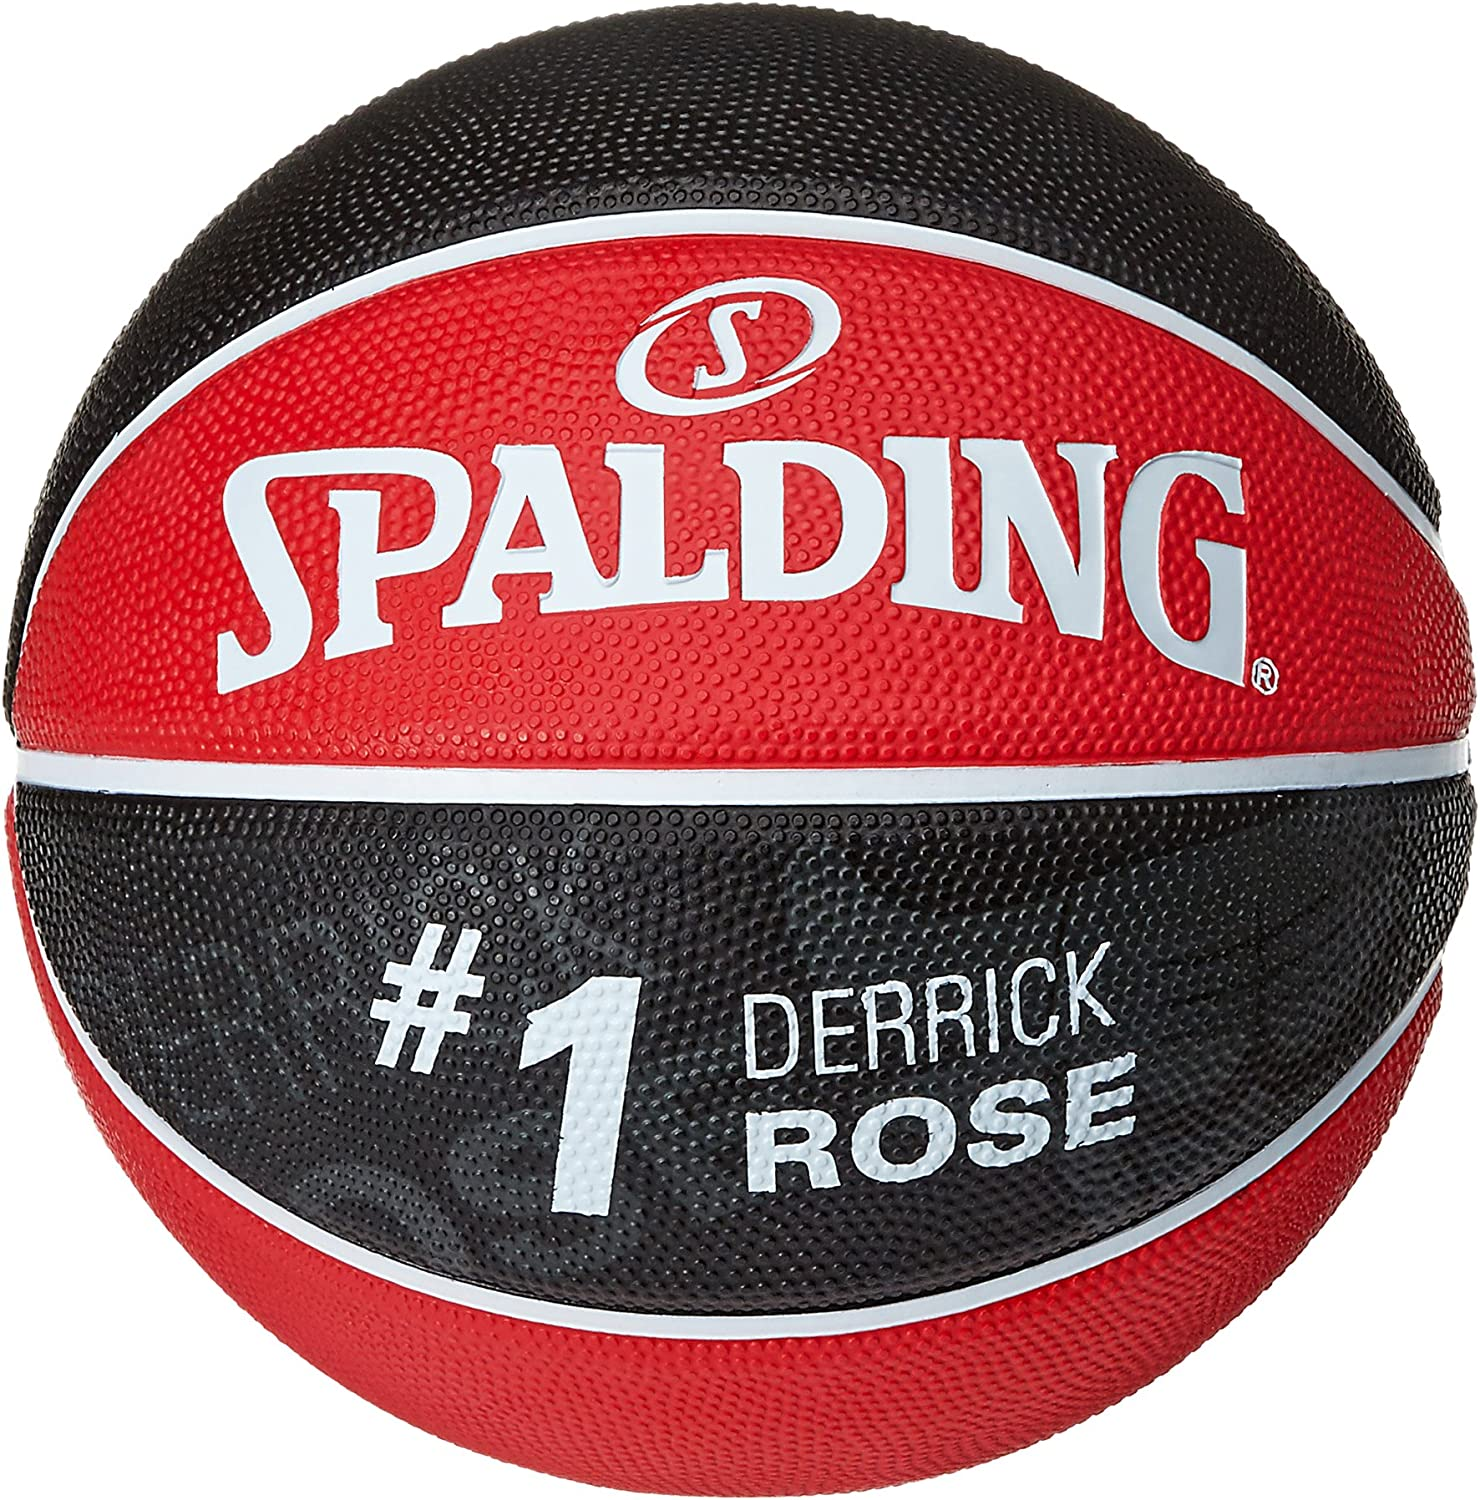 Spalding NBA Player Derrick Rose SZ.7 (83-351Z) Balones de ...